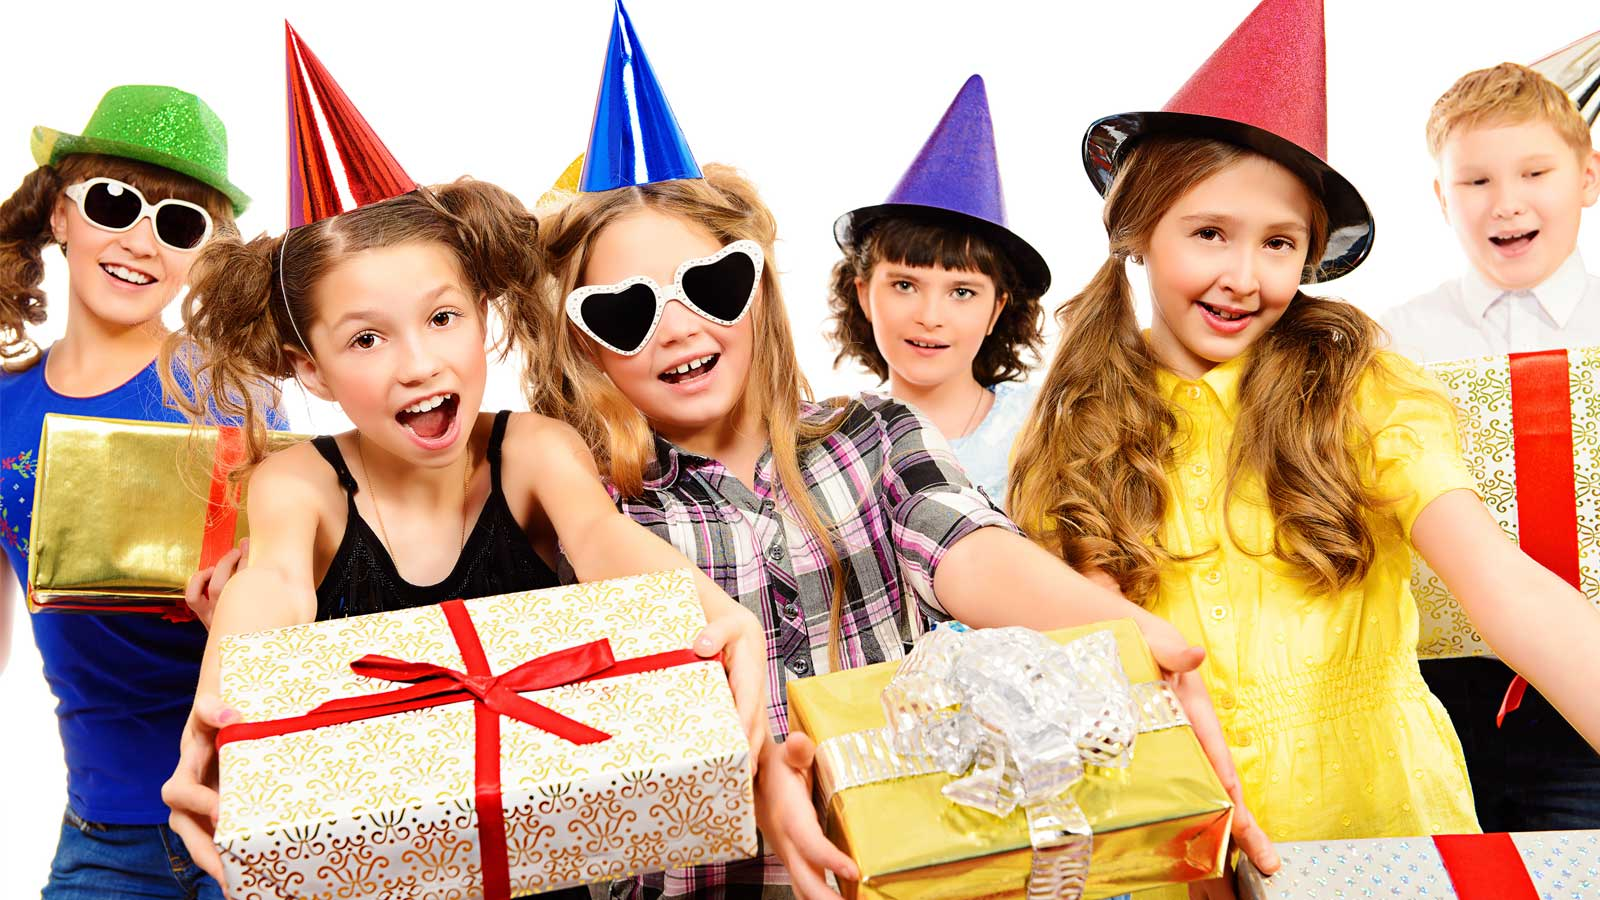 How to Buy the Right Kids Birthday Party Gift